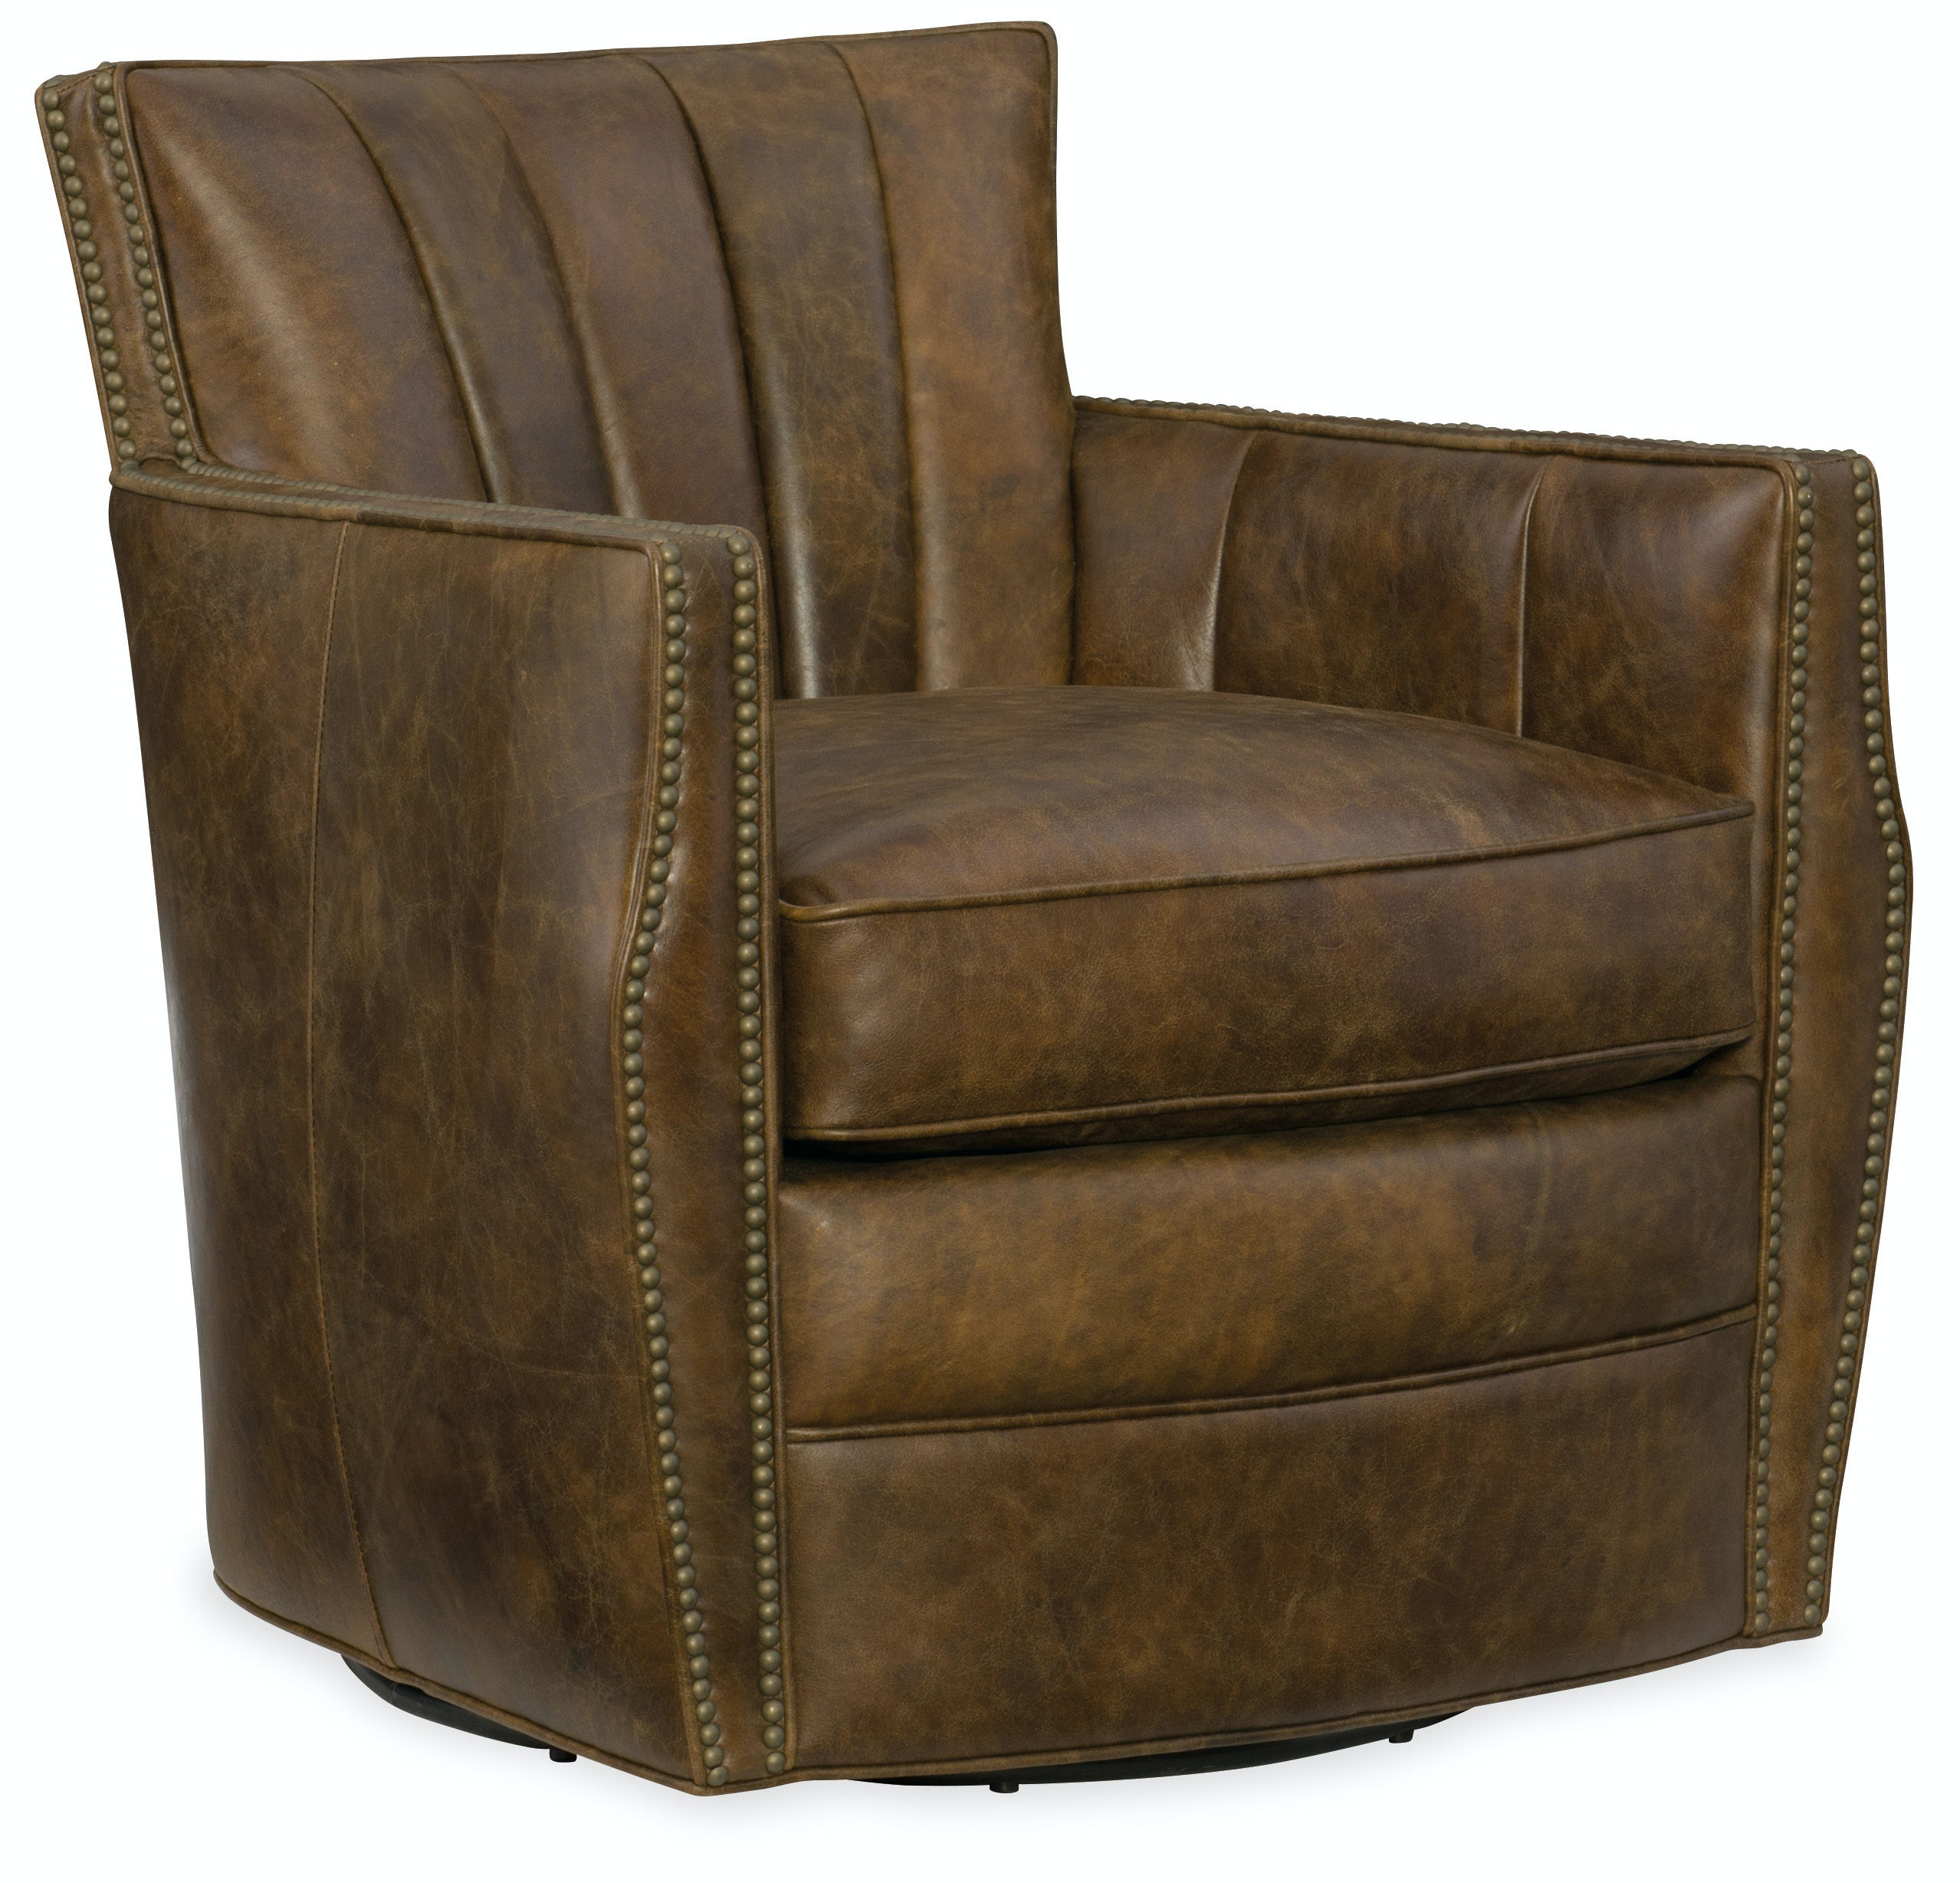 Hooker Furniture Carson Swivel Club Chair CC492 SW 085 Part 53